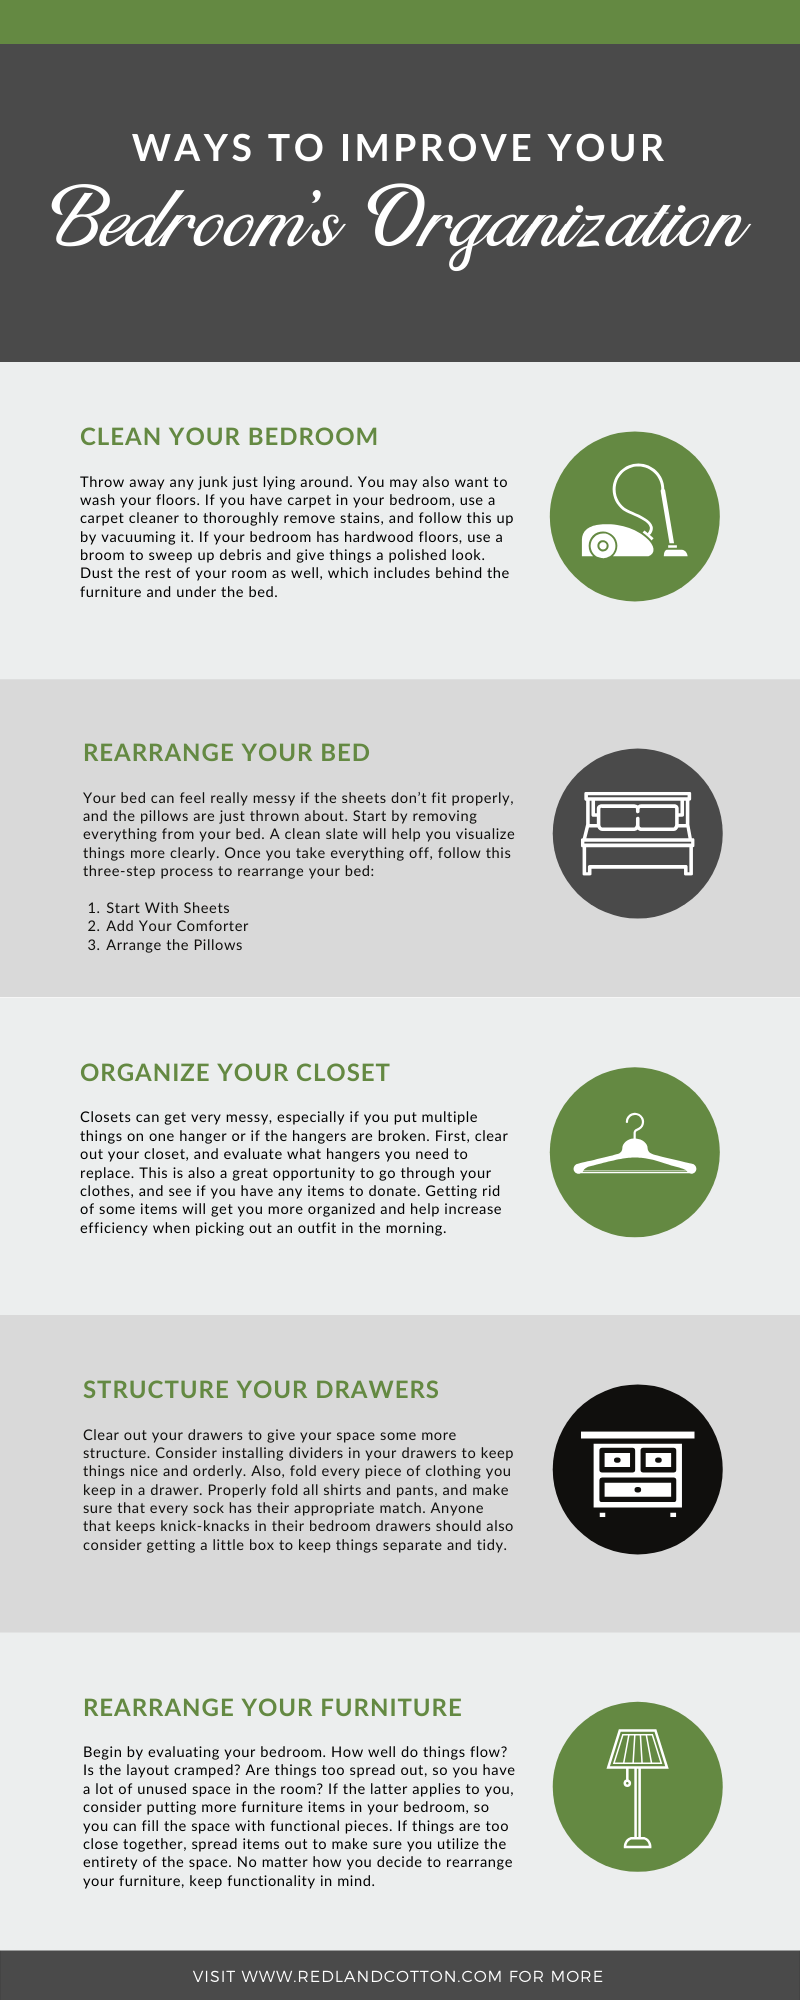 Ways to Improve Your Bedroom's Organization infographic